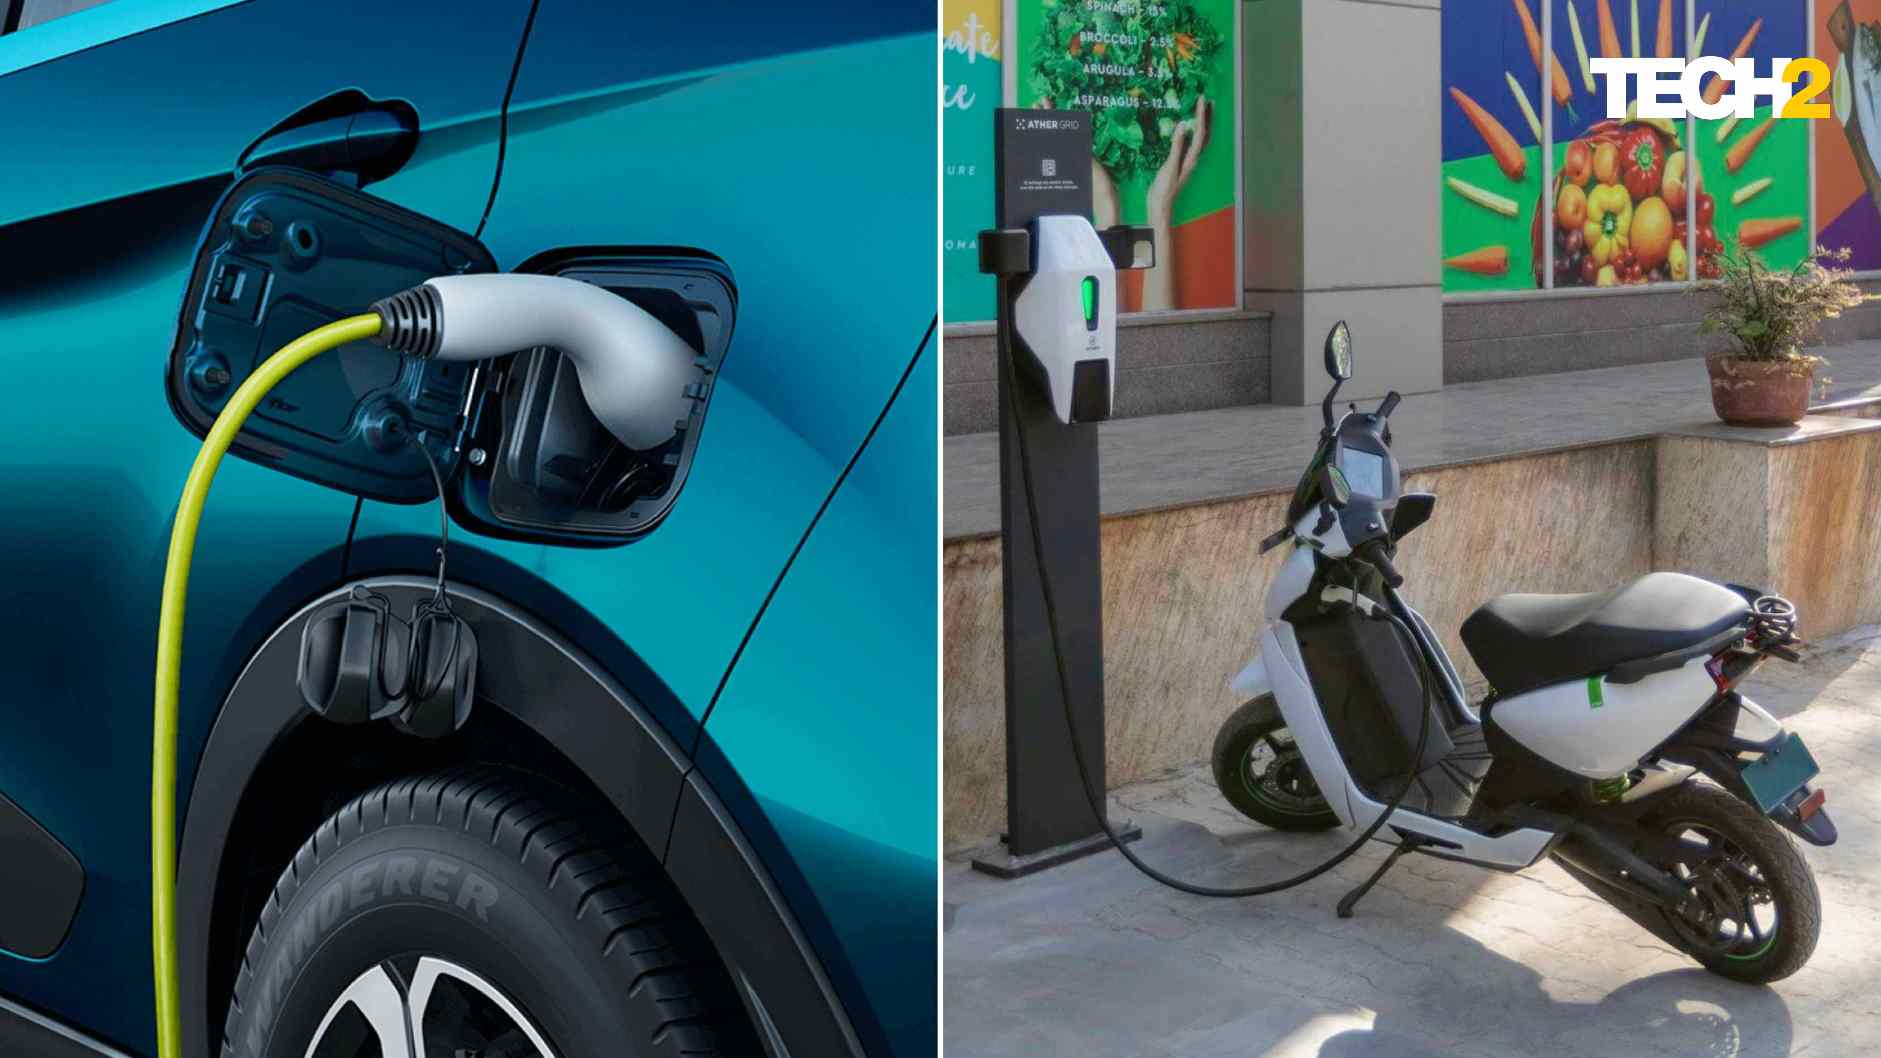 The Maharashtra EV policy 2021 provides increased subsidy for both electric two-wheelers and electric cars and SUVs. Image: Tech2/Amaan Ahmed